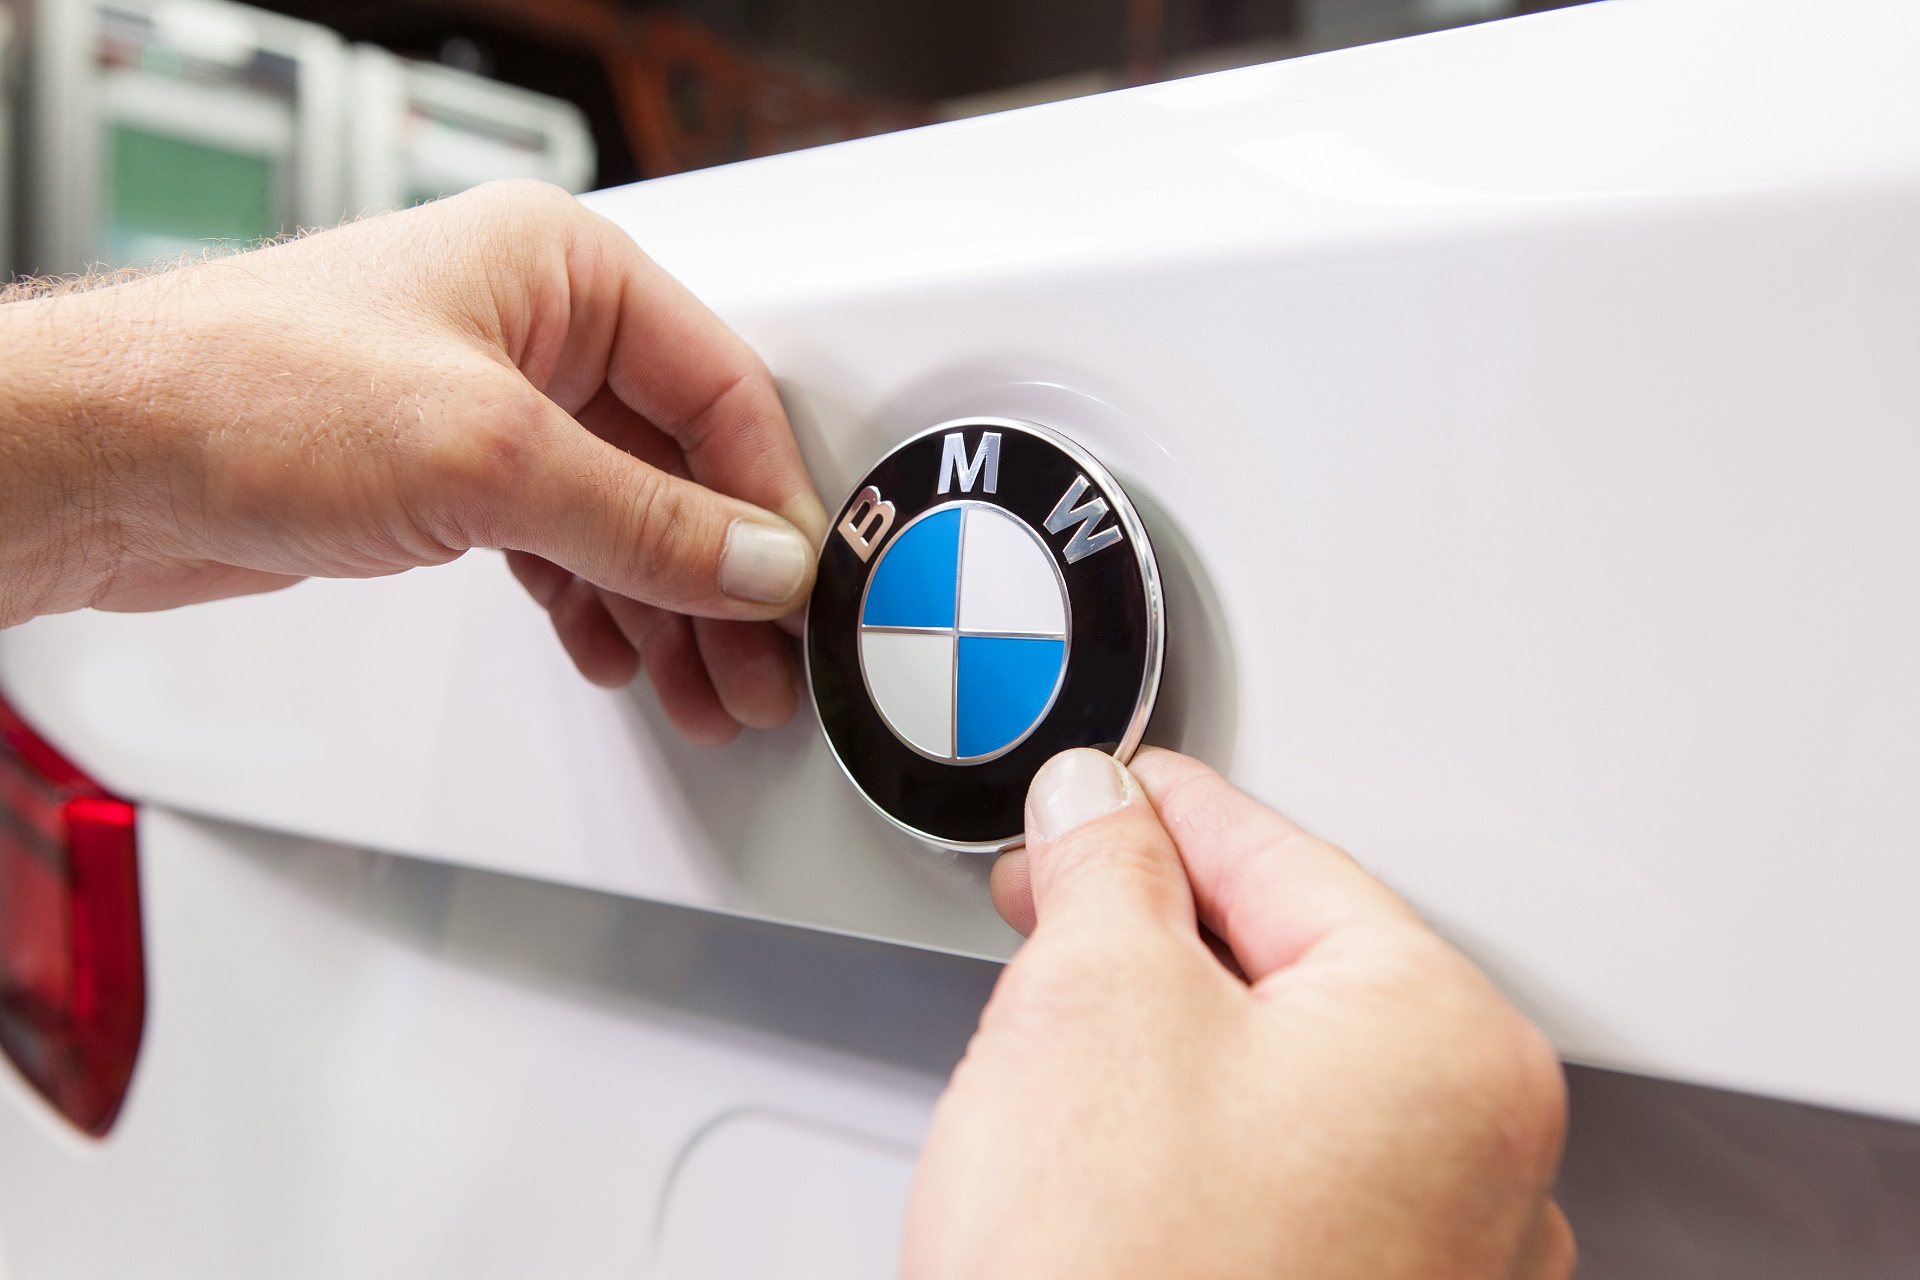 BMW to build €1 billion vehicle factory in Hungary